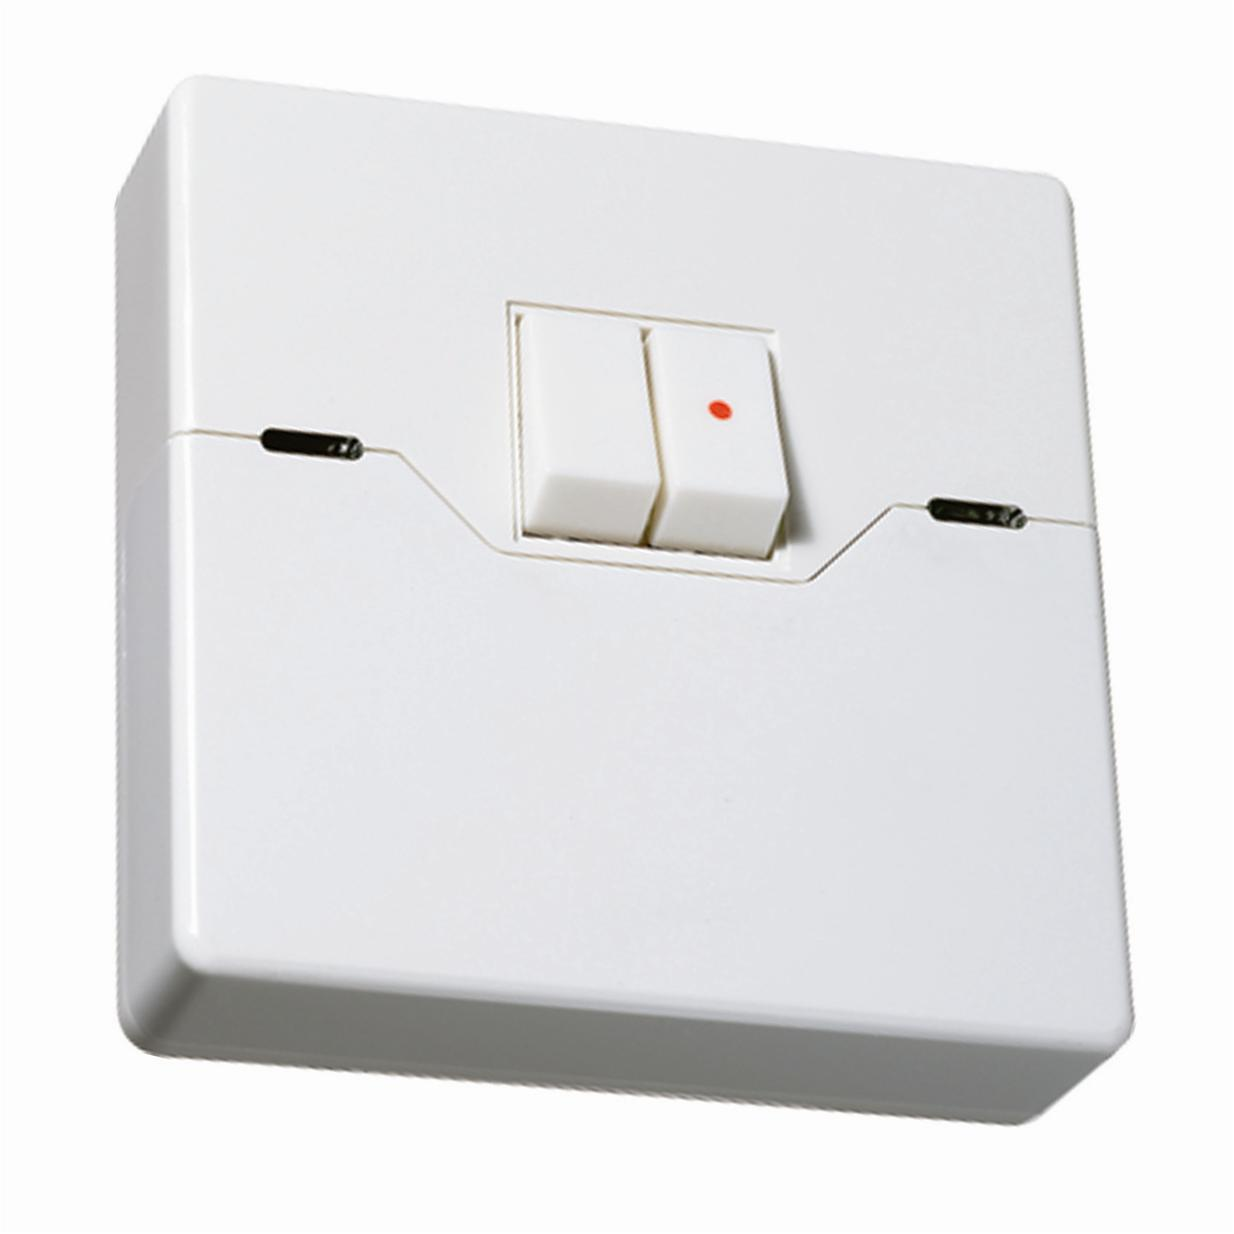 Programmable Security Light Switch 2 Gang White | Wireless Radio ...